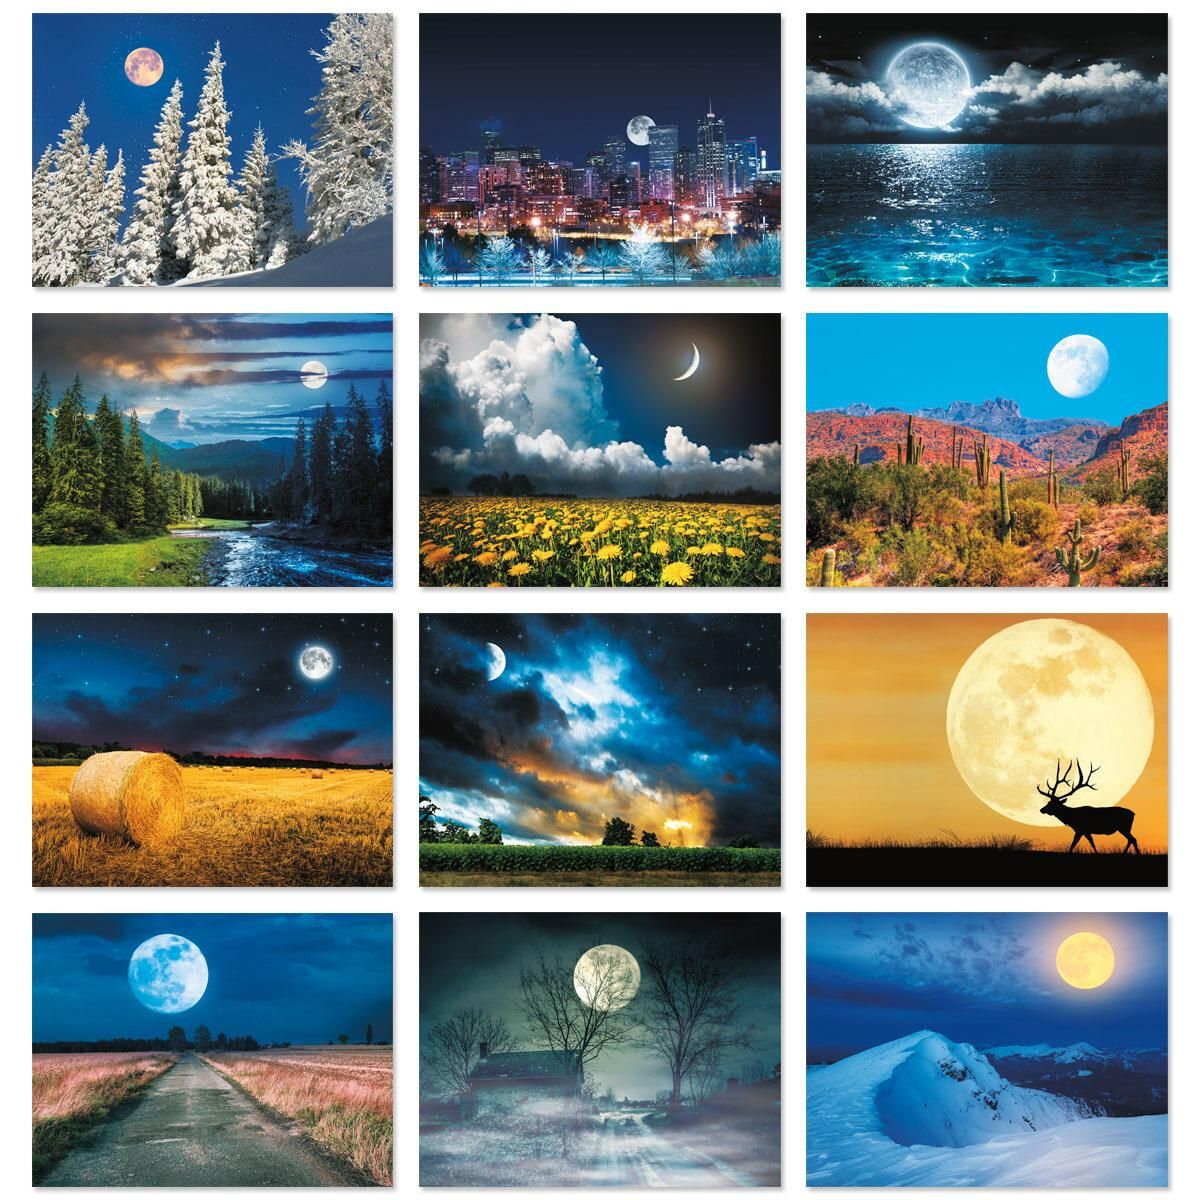 2018 Moonscapes Wall Calendar